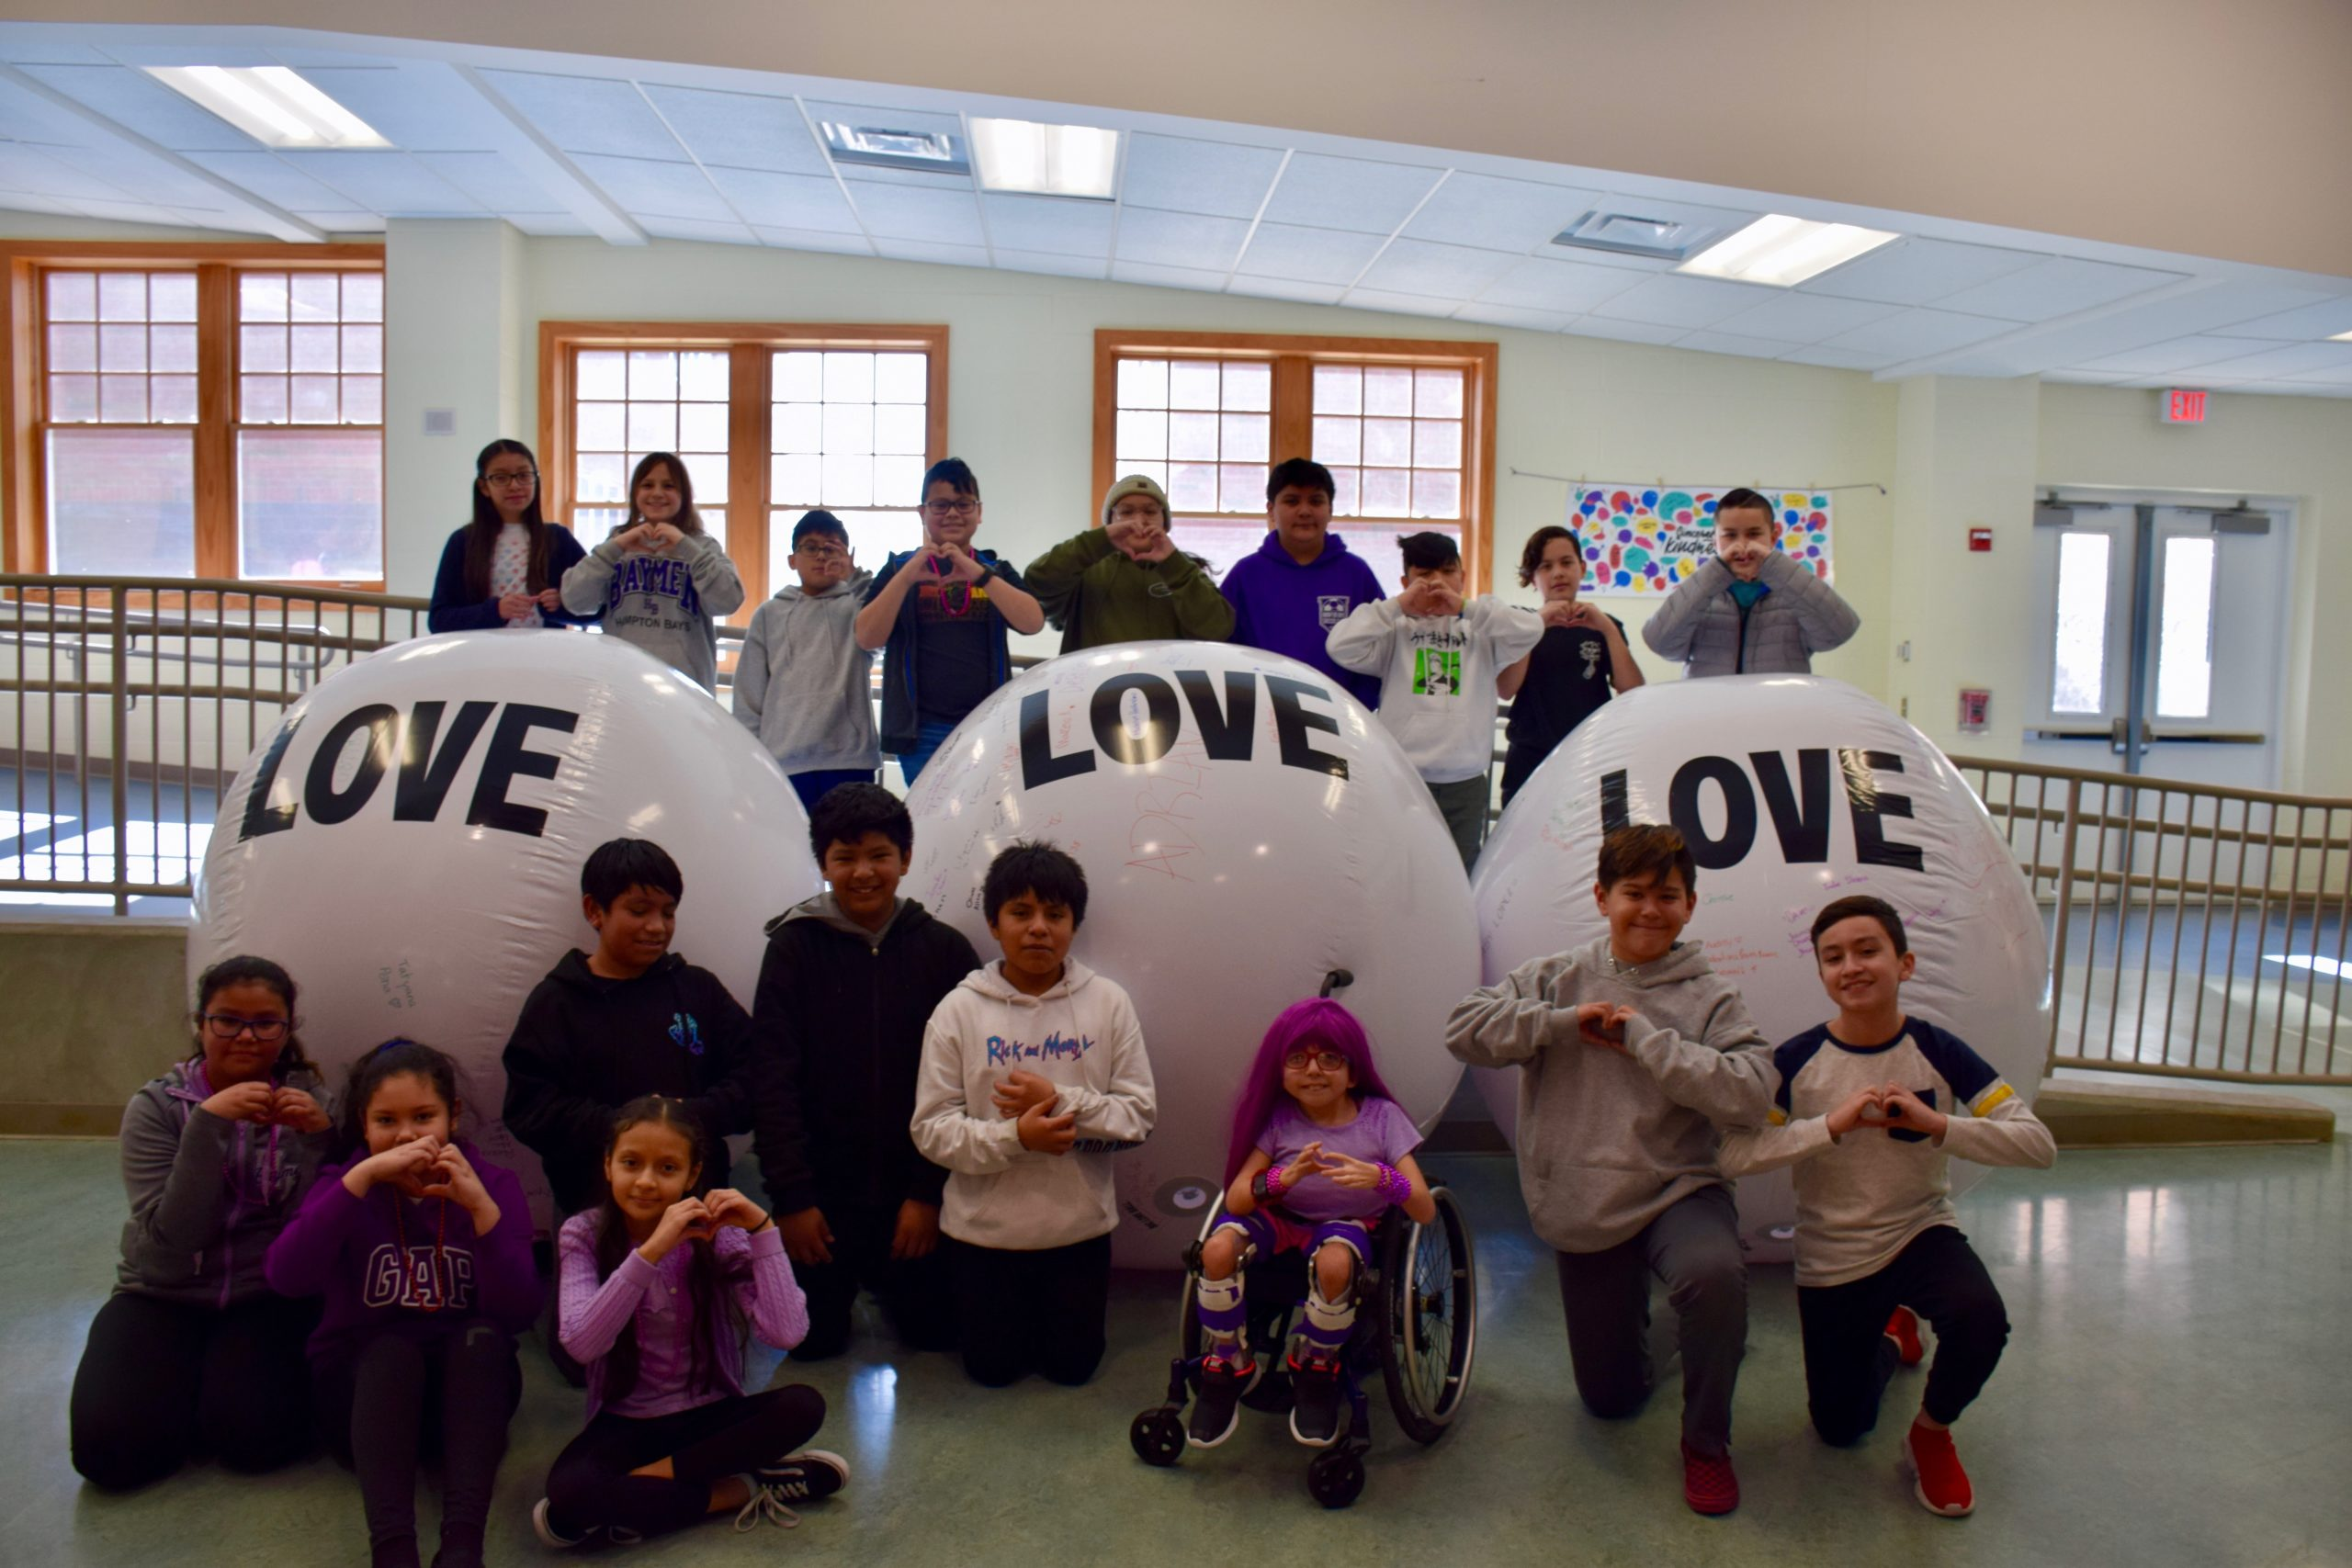 Continuing its mission to foster a culture of kindness, Hampton Bays Middle School held P.S. I Love You Day, an initiative where students took part in a variety of activities throughout the week of February 10. Now in its 10th year, P.S. I Love You Day aims to raise awareness about bullying and suicide while promoting kindness.